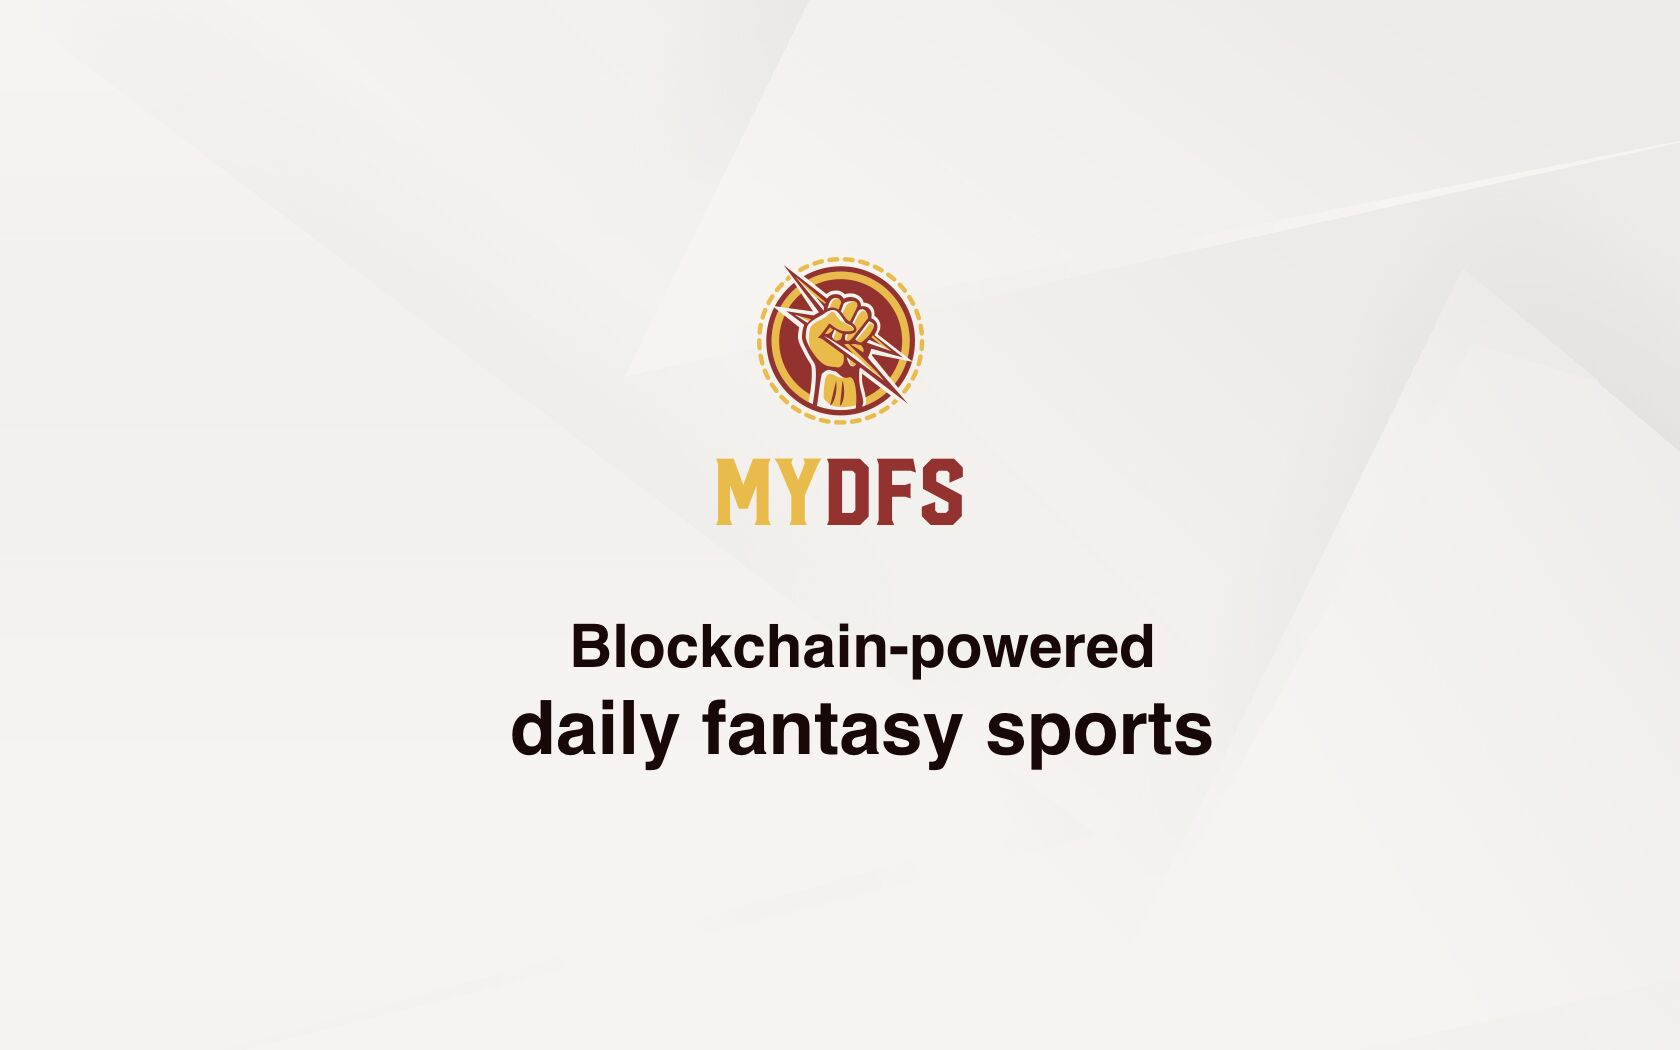 mydfs_pitchdeck.018_preview.jpg